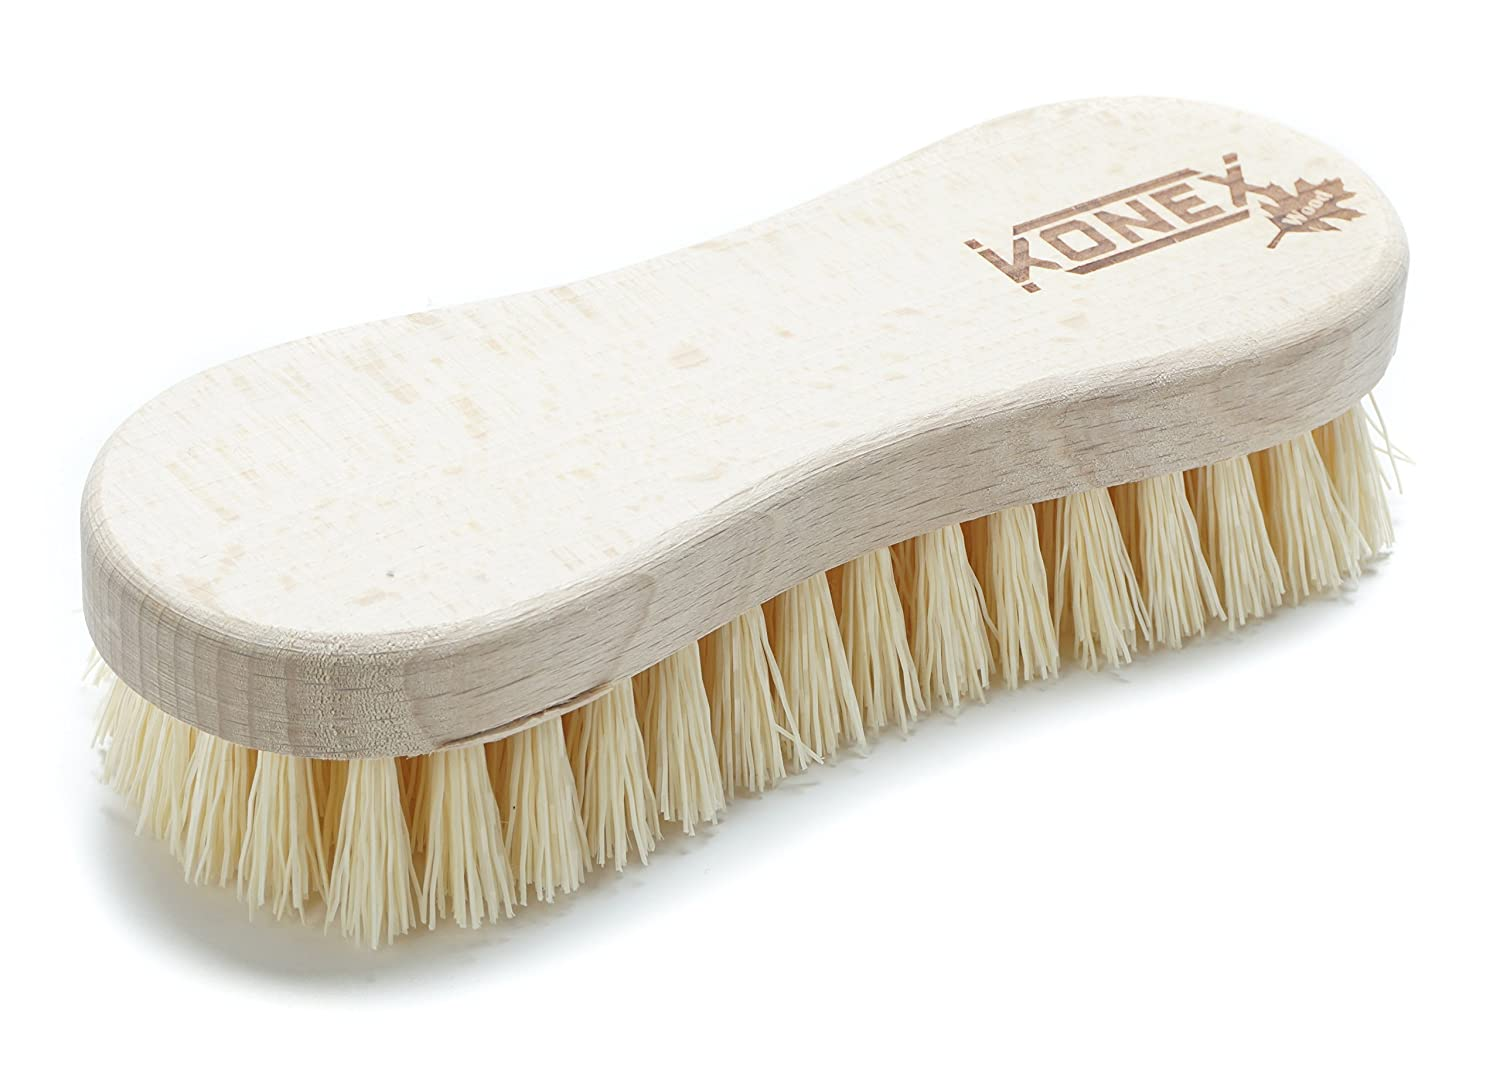 Konex Fiber Economy Utility Cleaning Brush. Heavy Duty Scrub Brush With Wood Handle. (Peanut shaped)